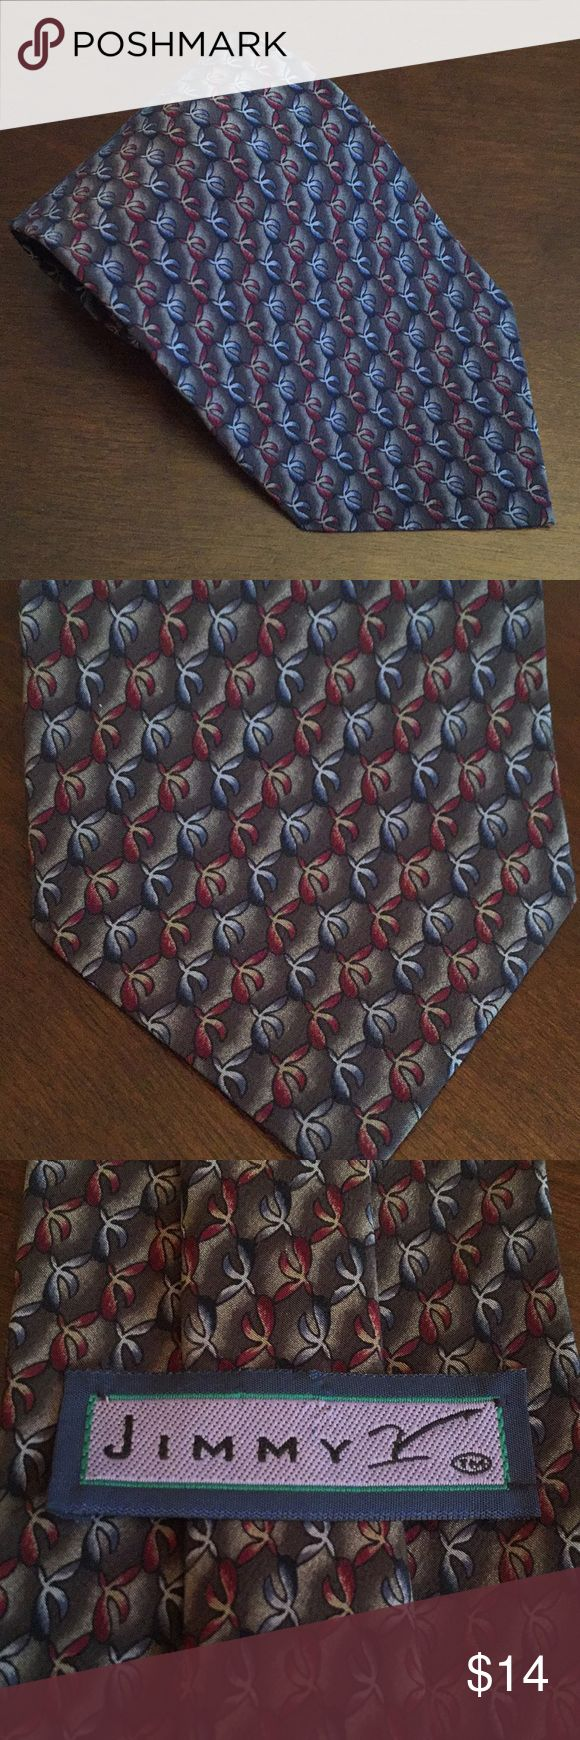 Jimmy V necktie Great necktie from the Jimmy V Collection.  Original purchase price helped raise funds for cancer research thru The V Foundation.  Dark grey with a red and light grey geometric pattern throughout the tie. Very good condition. Accessories Ties